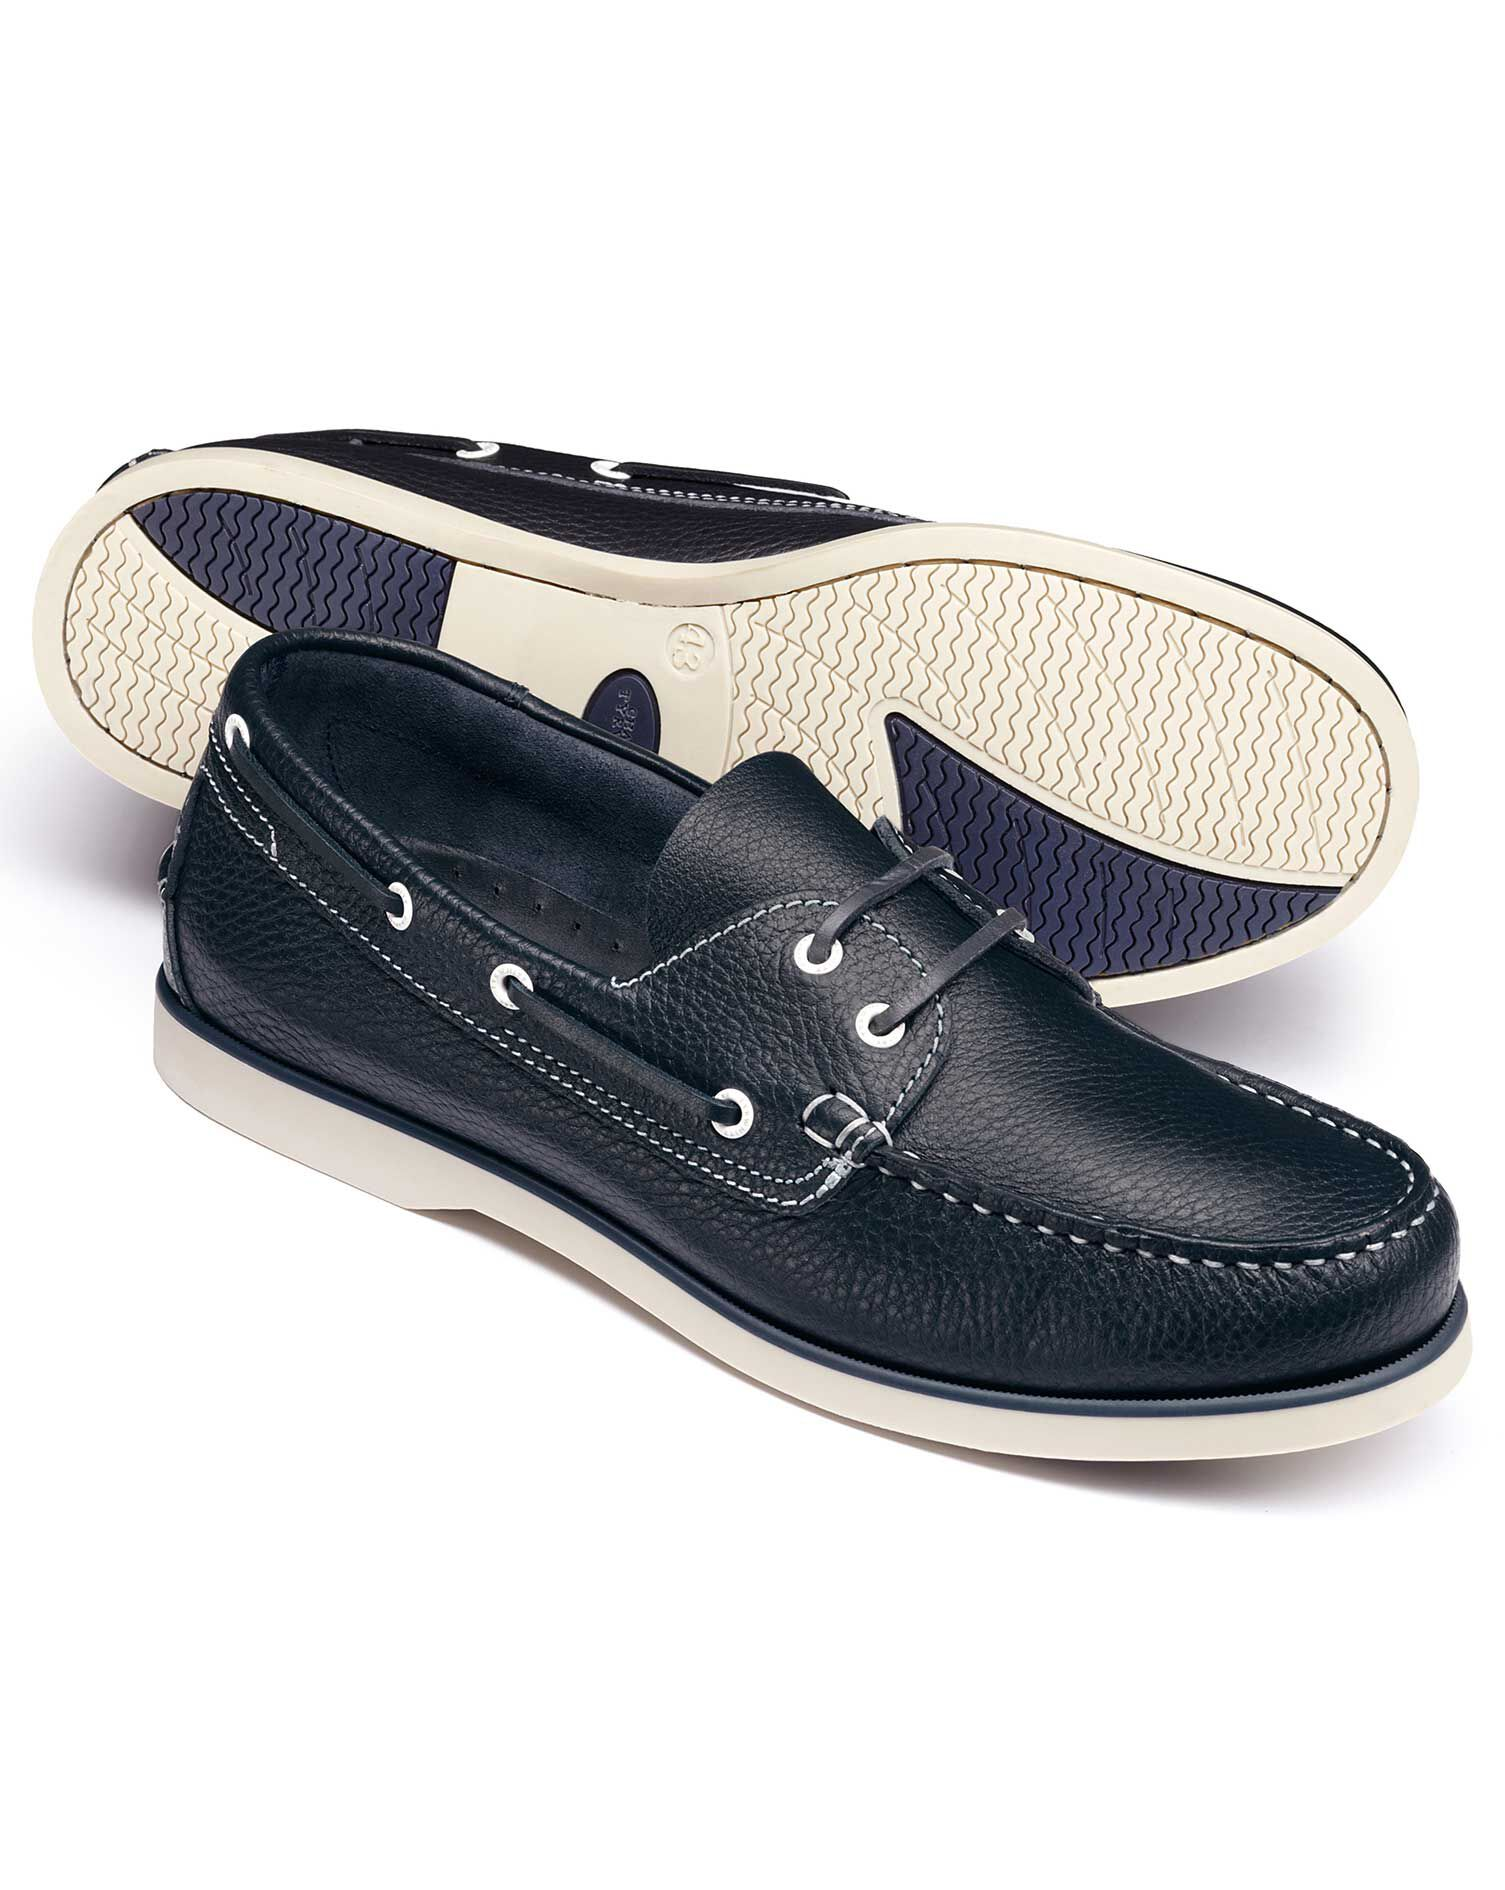 Navy Fowey Boat Shoes Size 9 R by Charles Tyrwhitt